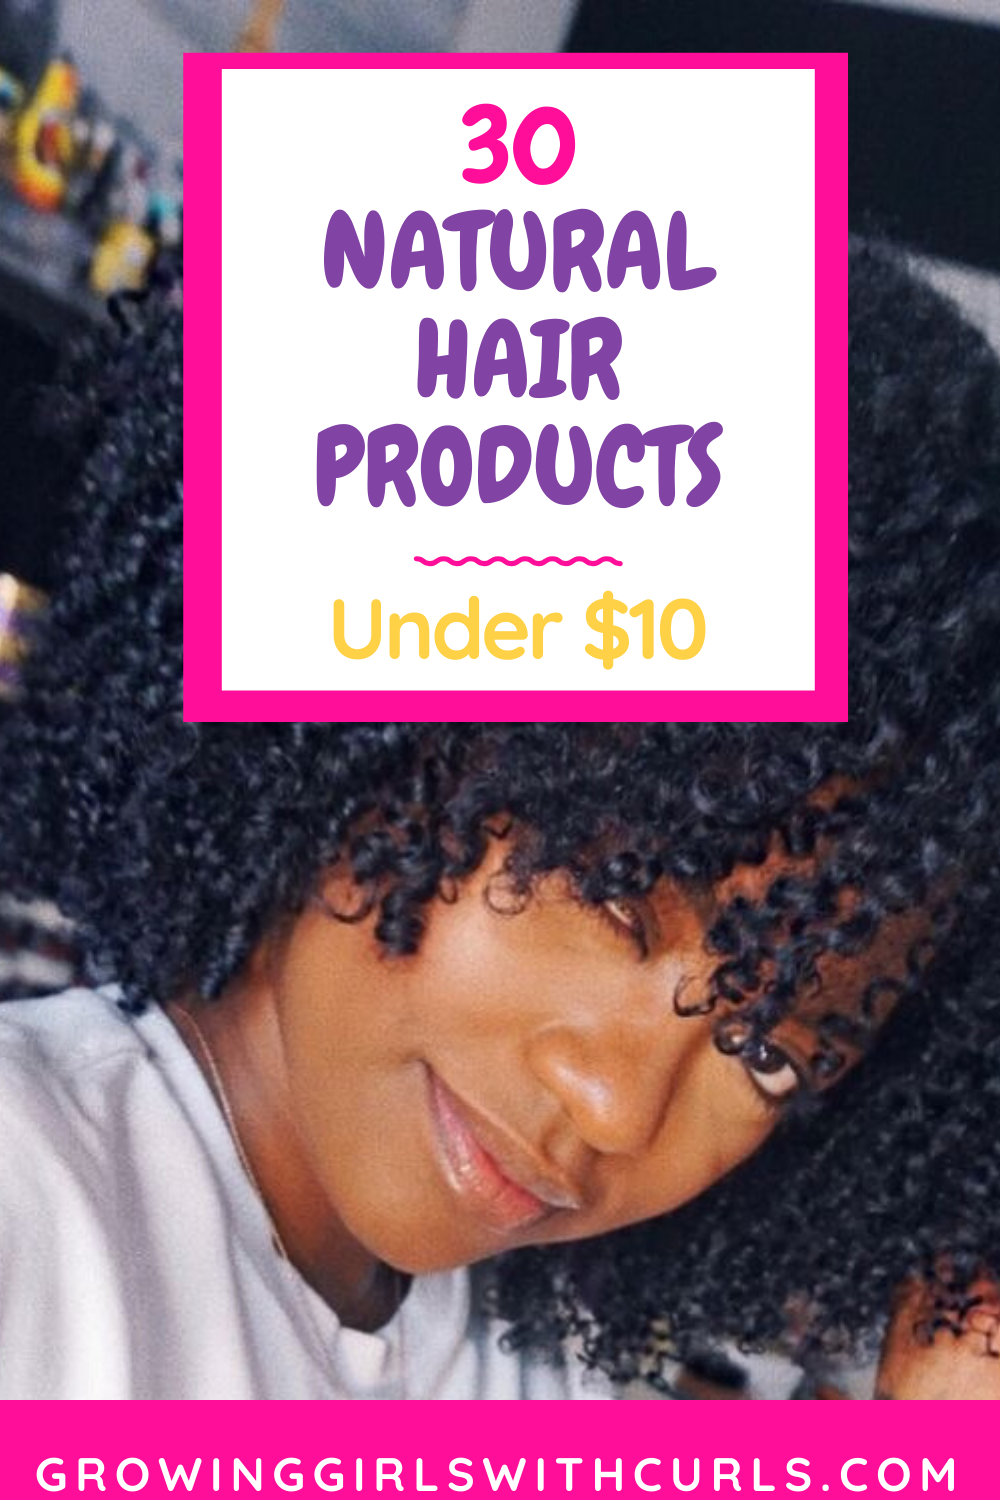 30 natural hair products under $10